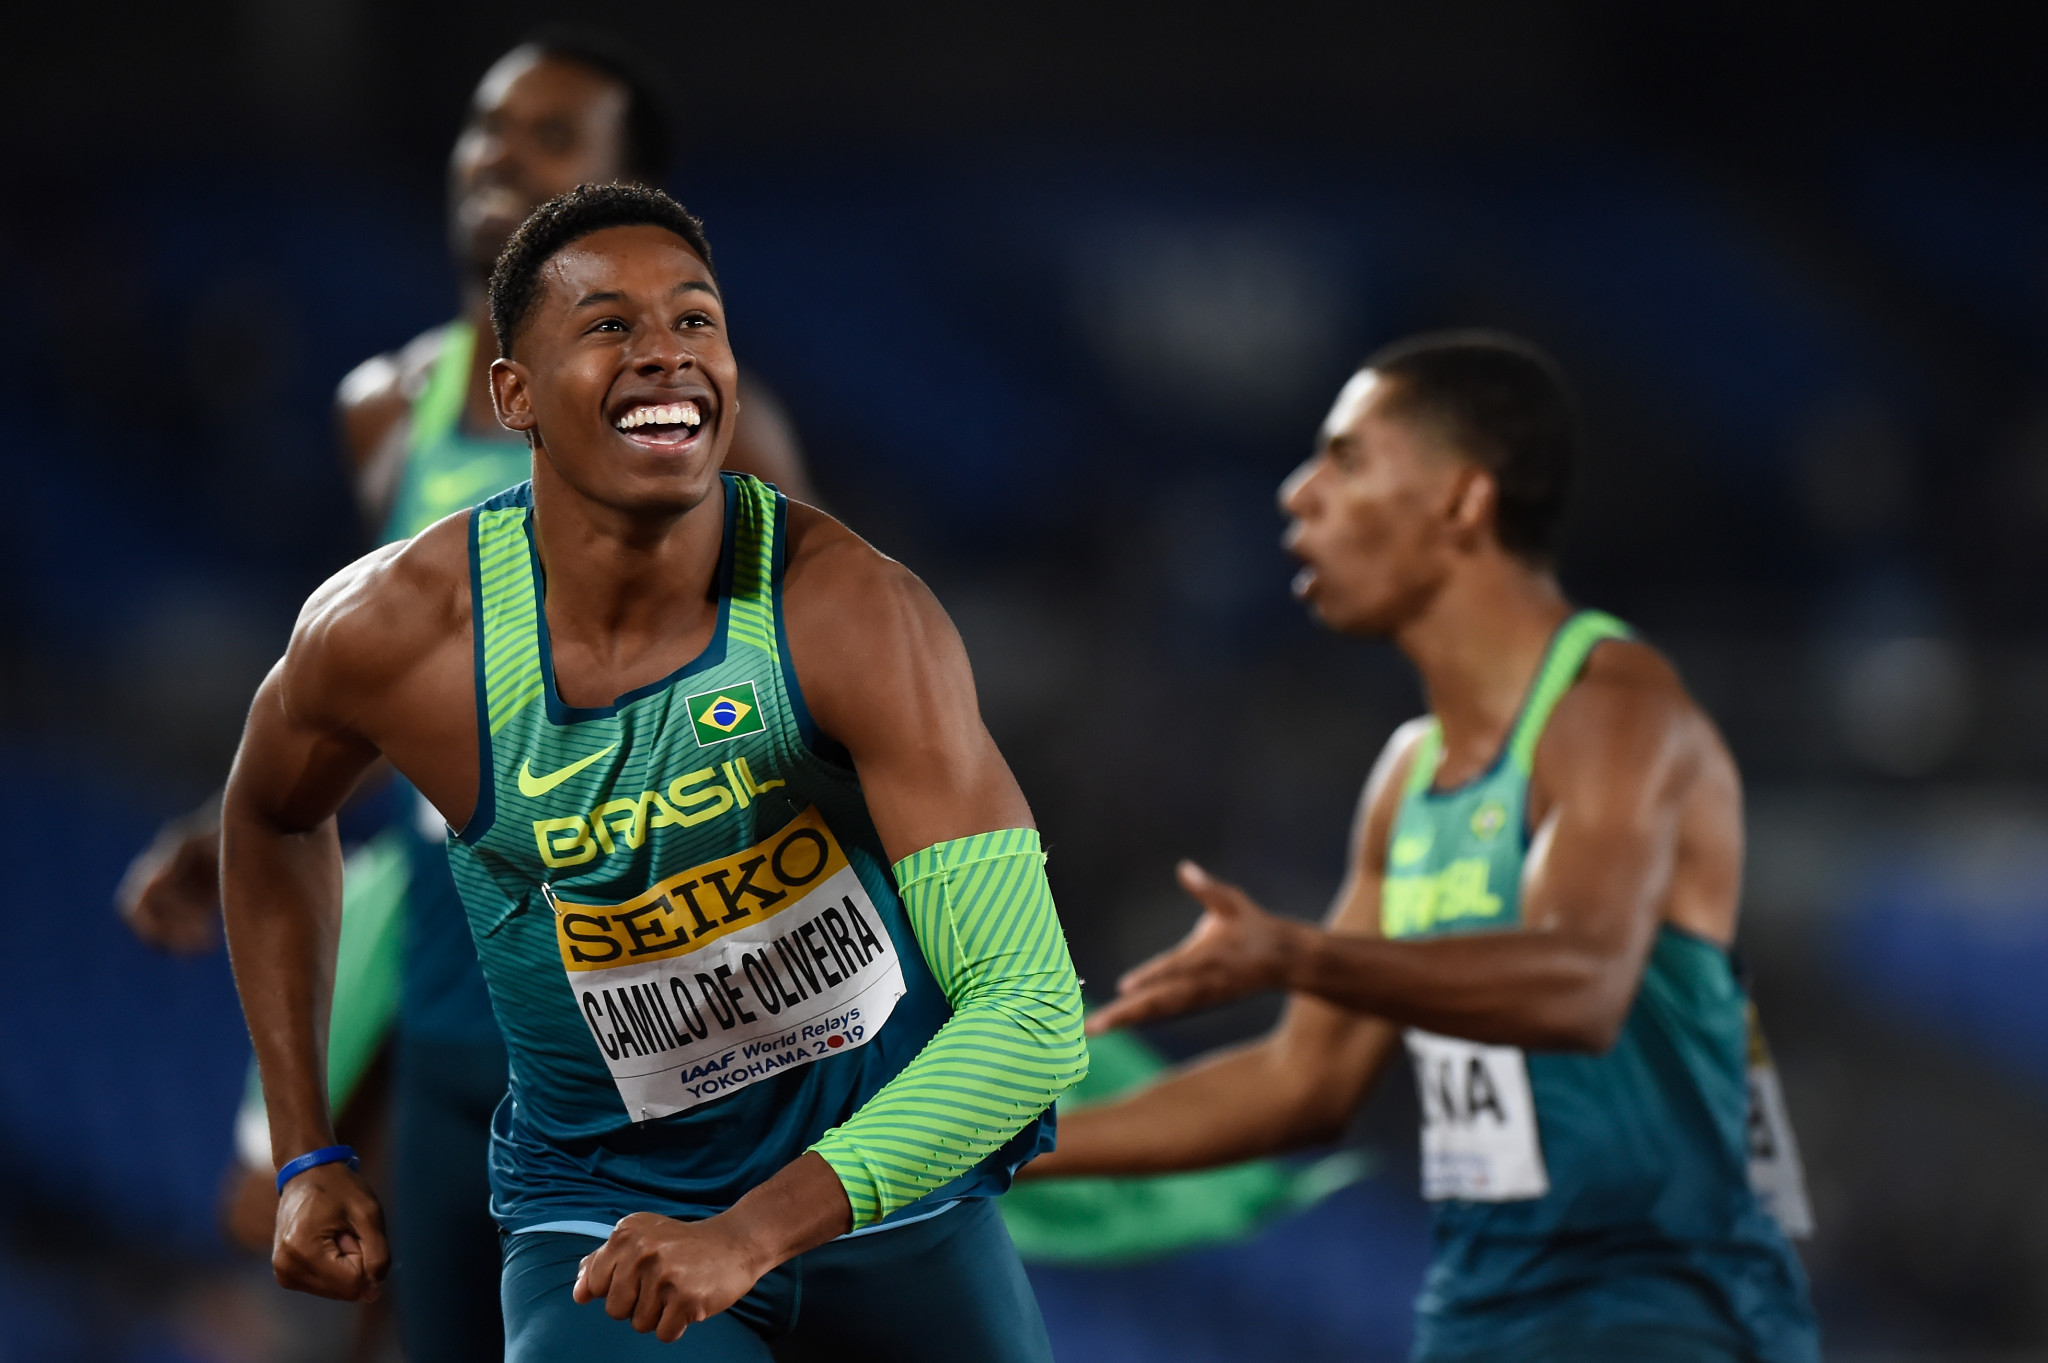 Brazil beat US and British world champions to earn shock men's 4x100m gold at IAAF World Relays